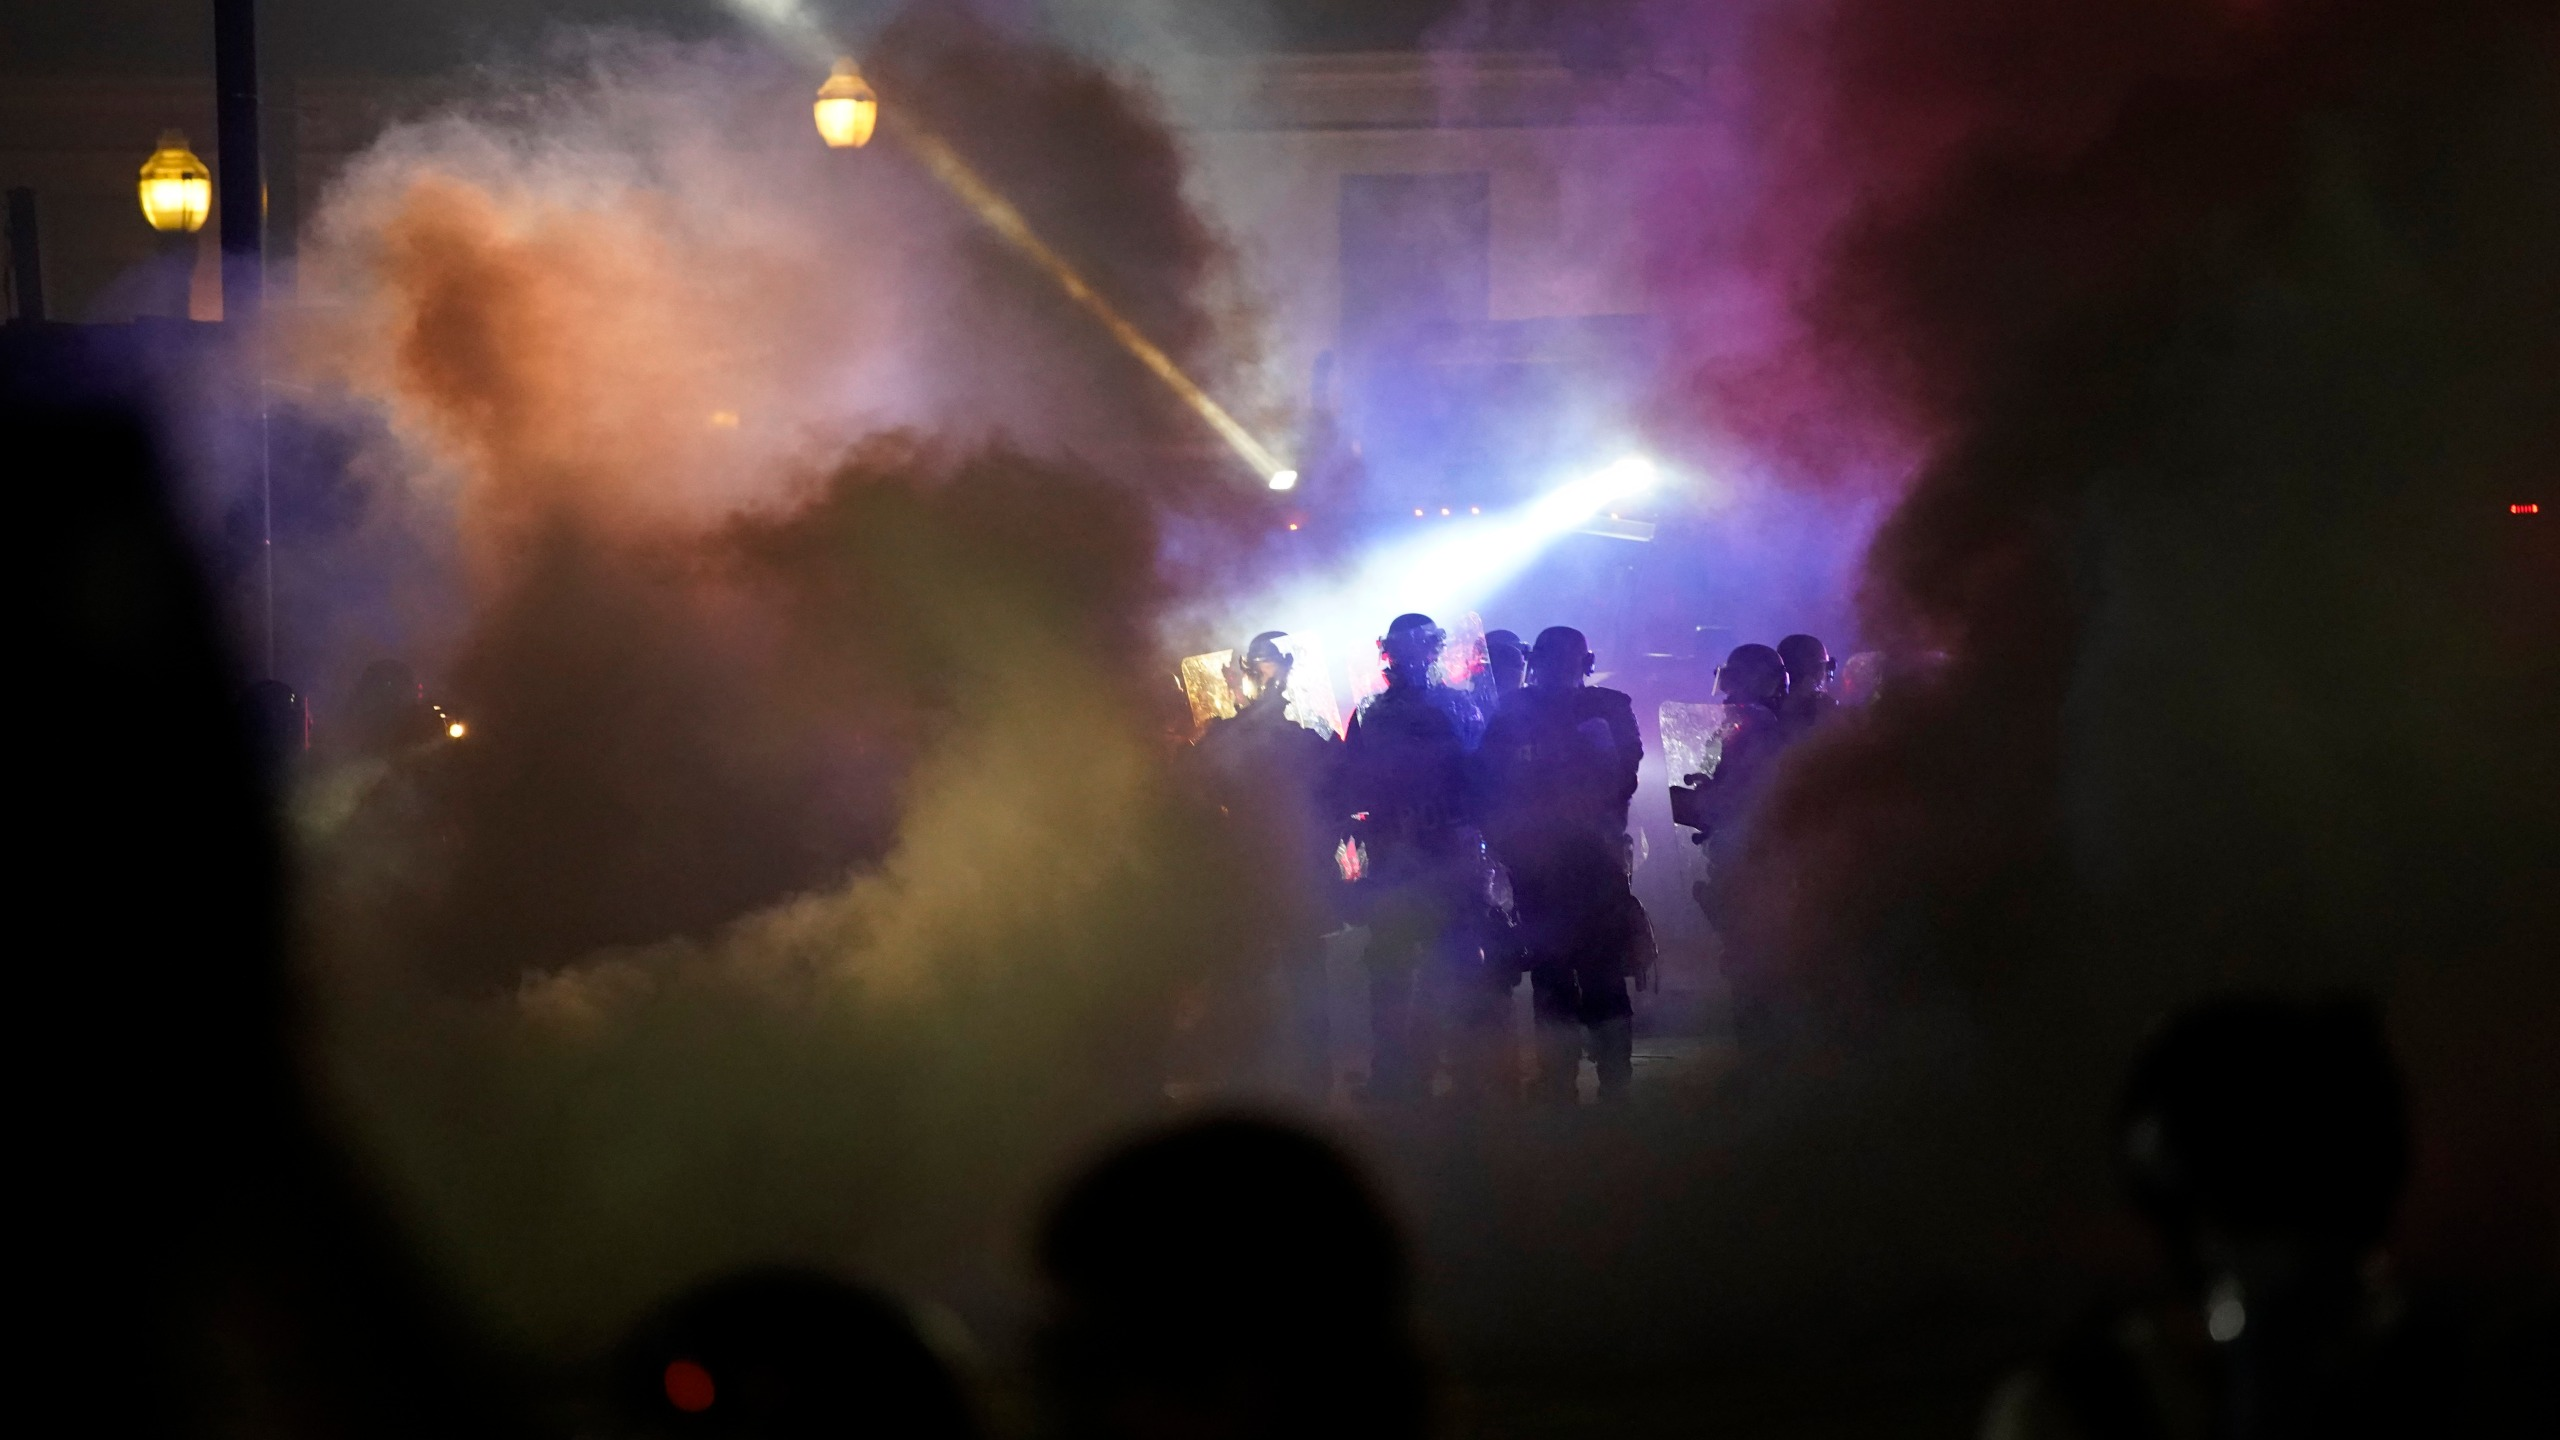 Police in riot gear clear the area in front of Kenosha County Courthouse in Wisconsin during clashes with protesters on Aug. 25, 2020. (David Goldman / Associated Press)